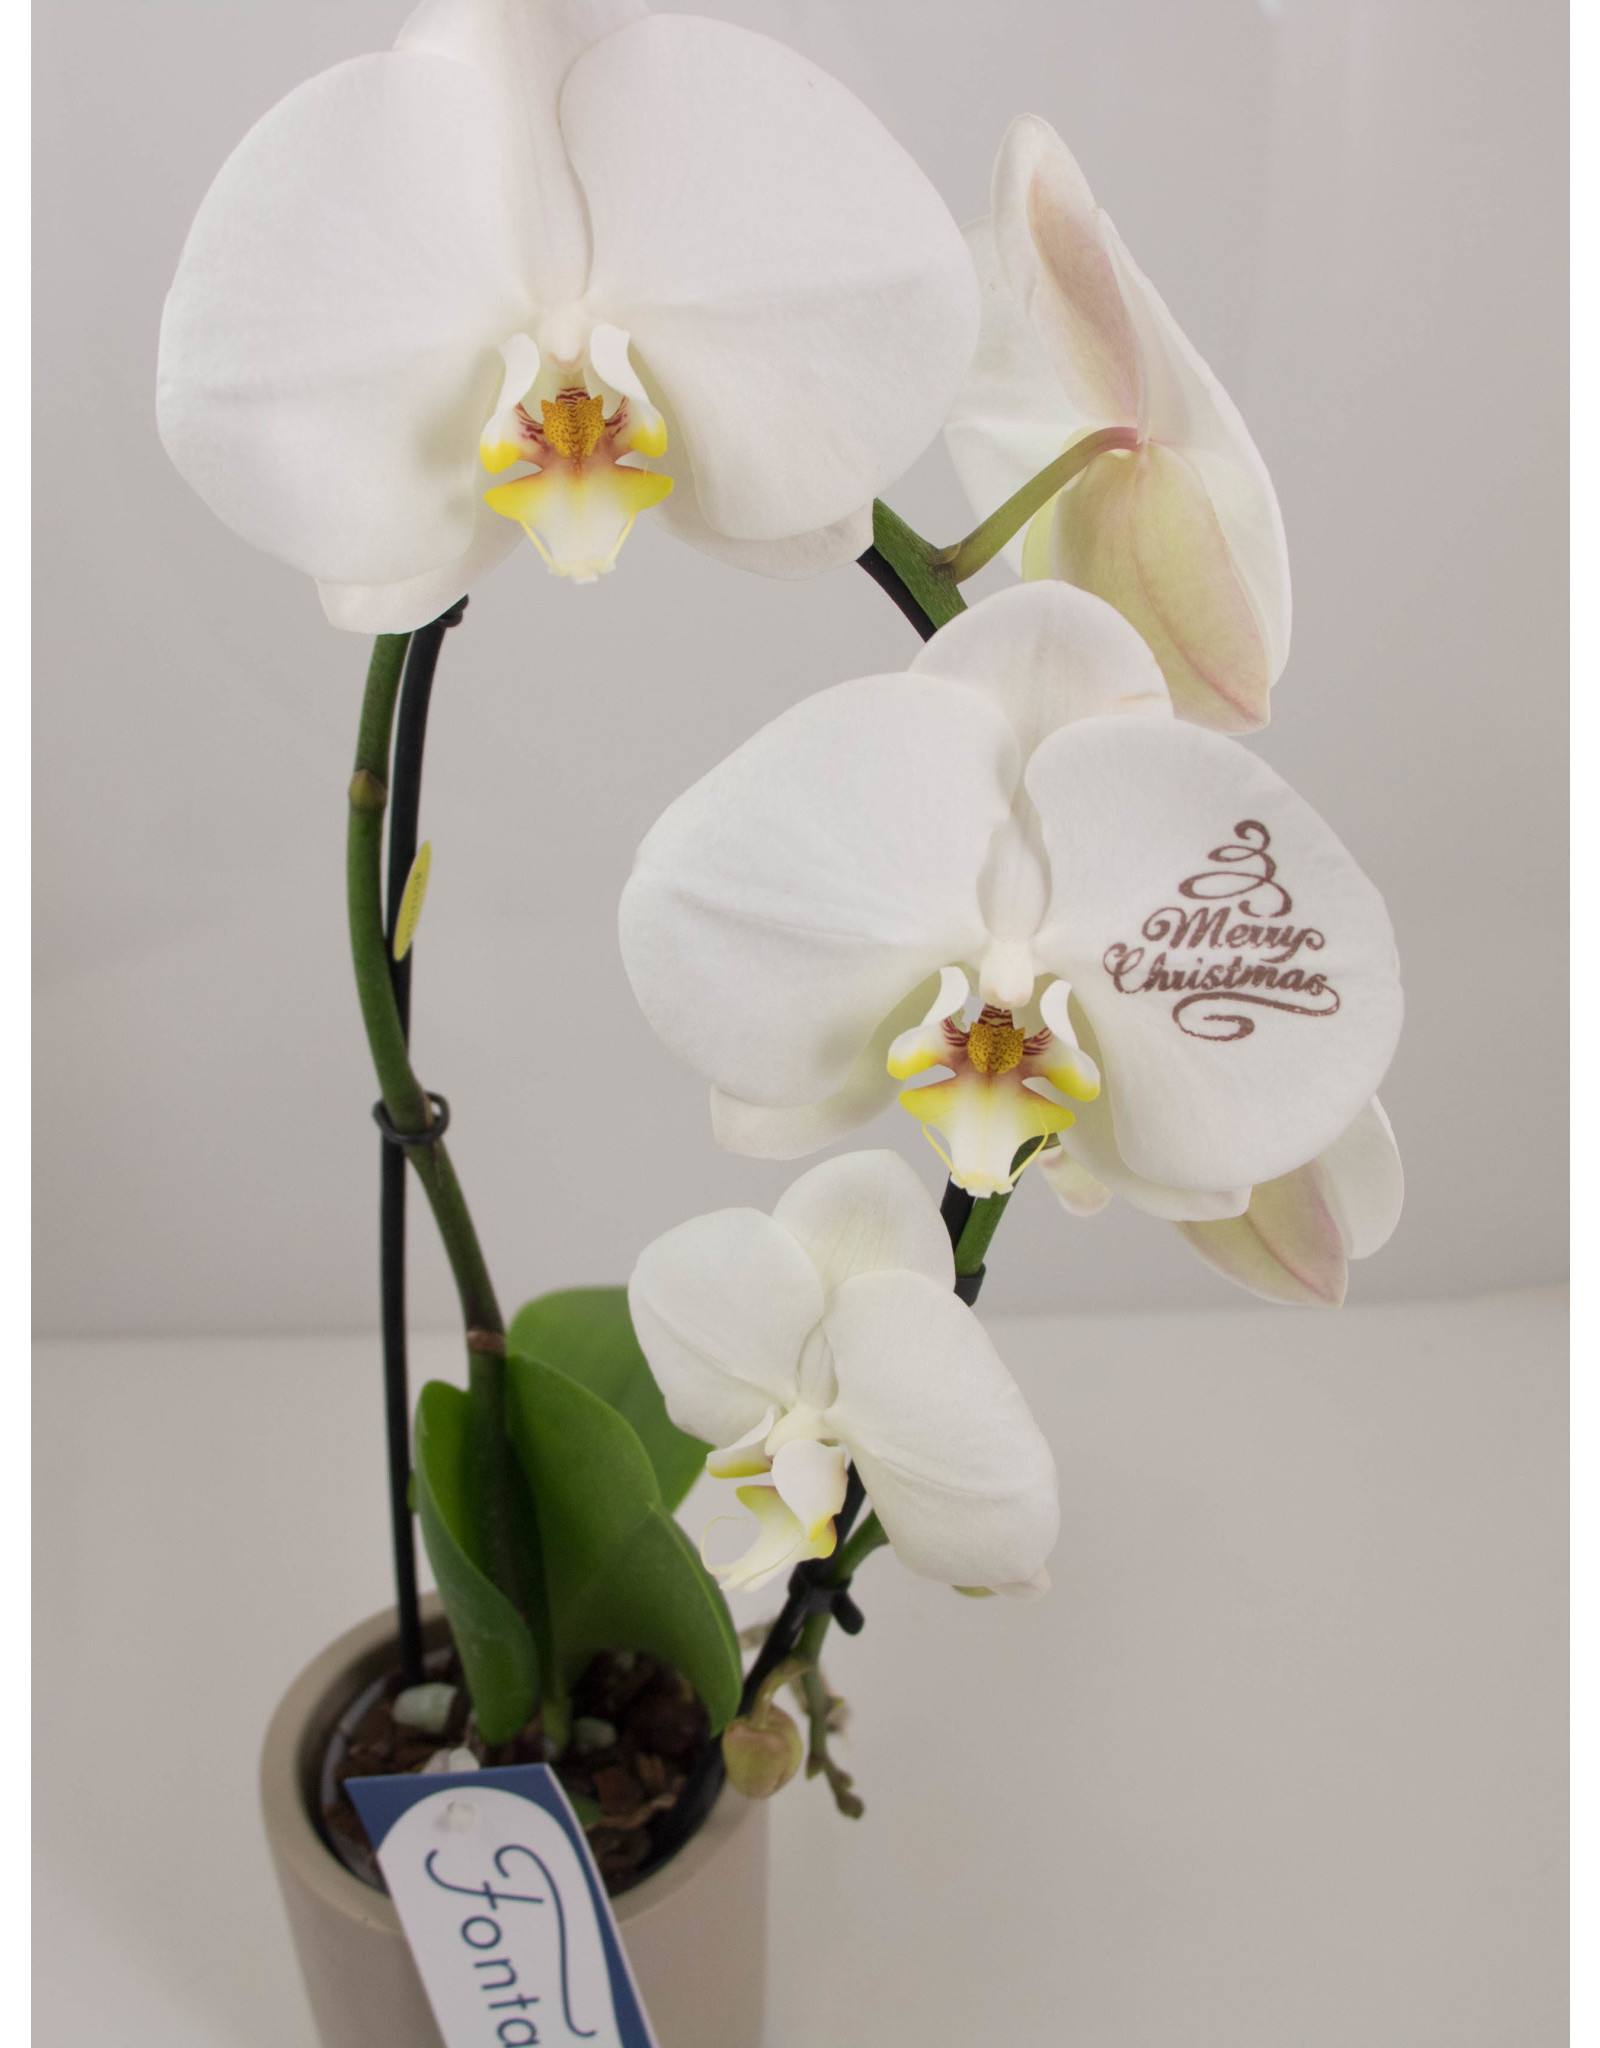 Orchidee - Merry christmas